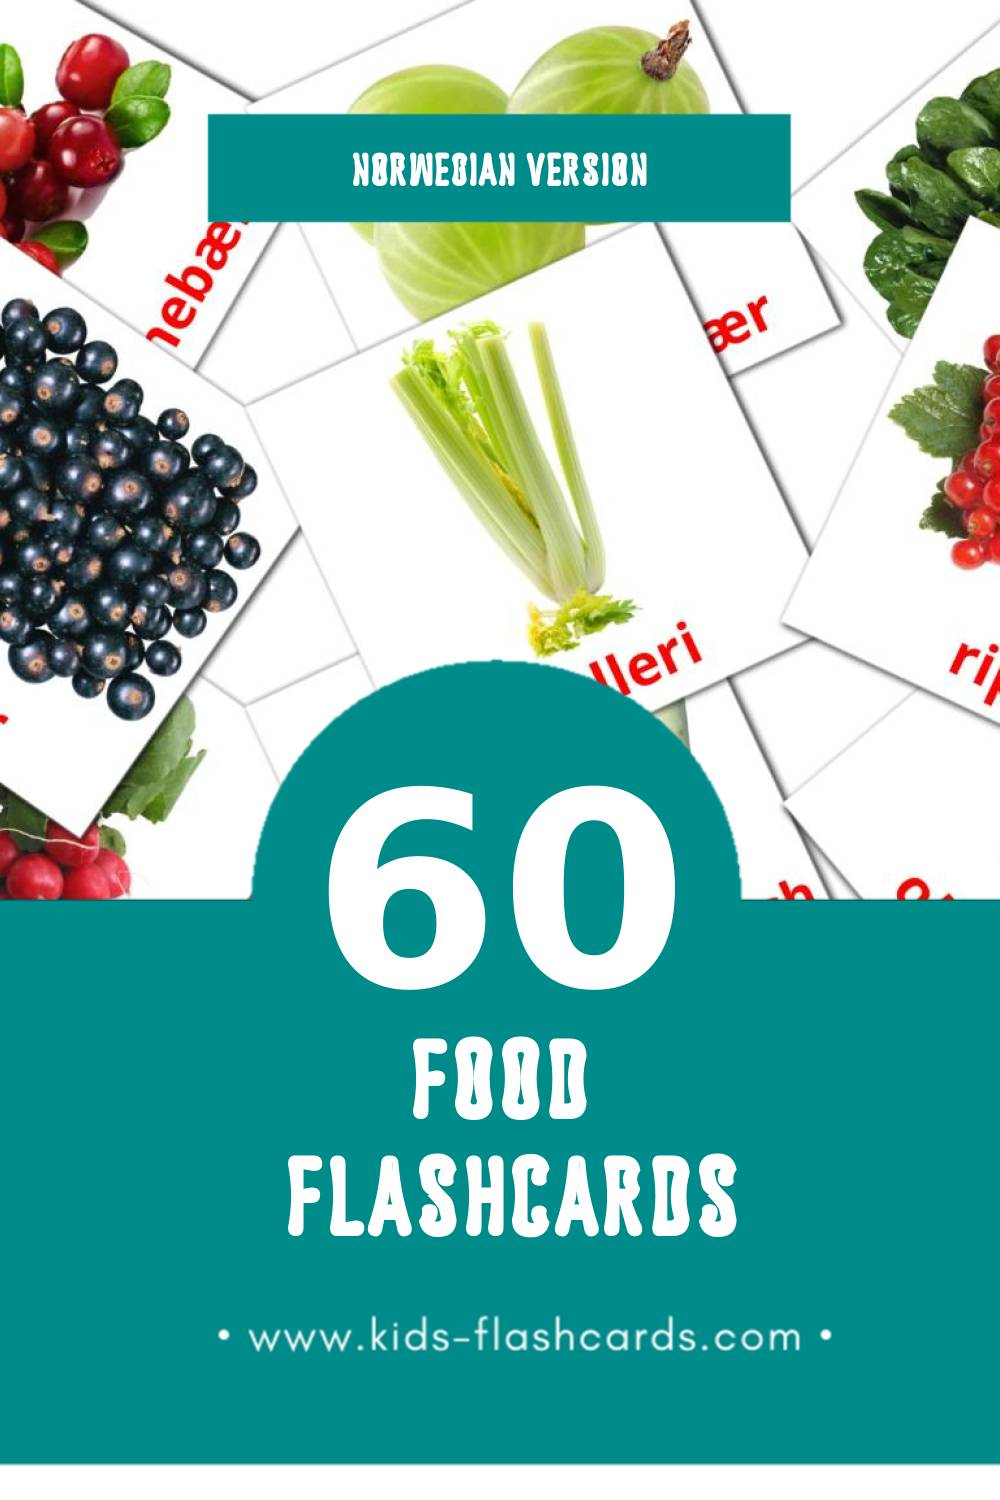 Visual mat Flashcards for Toddlers (60 cards in Norwegian)